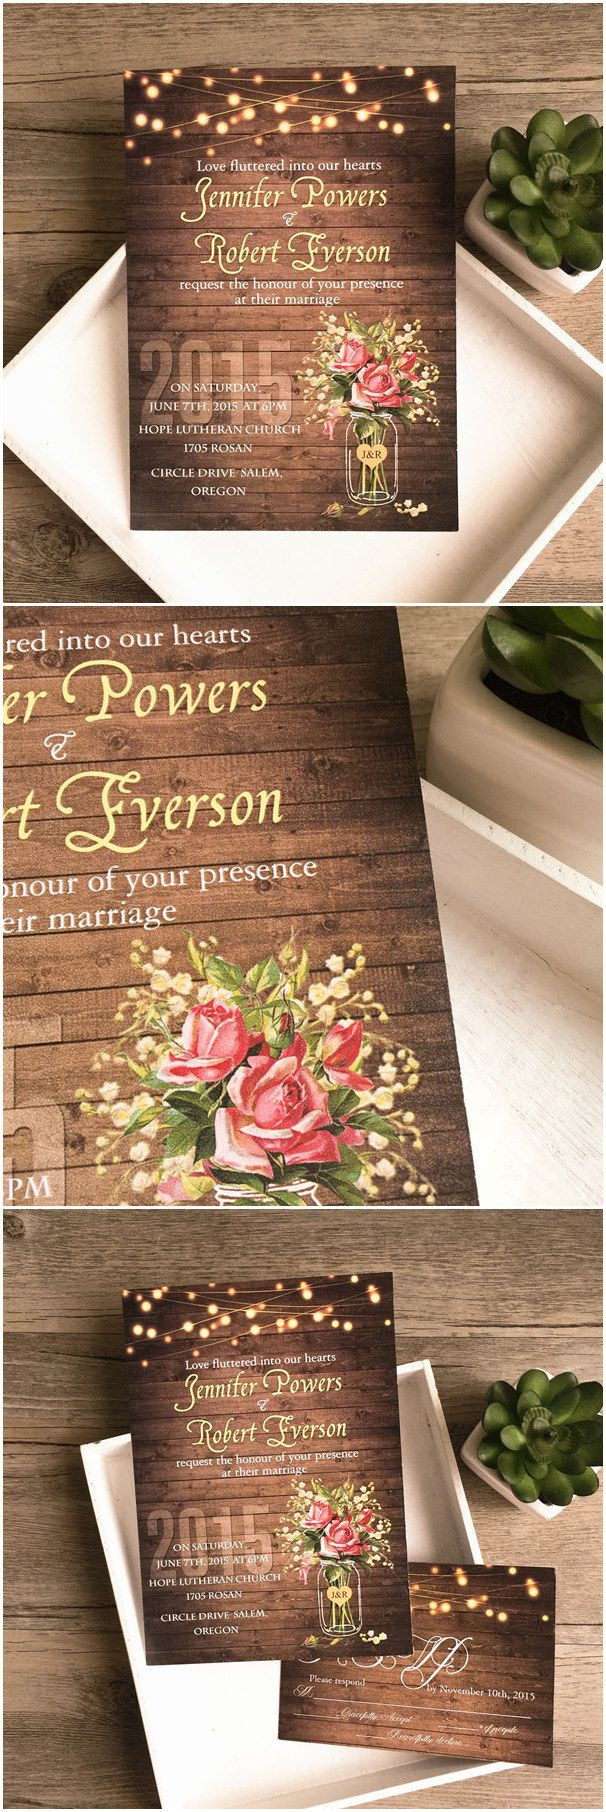 449 Best Wedding Invitations Images On Pinterest Wedding